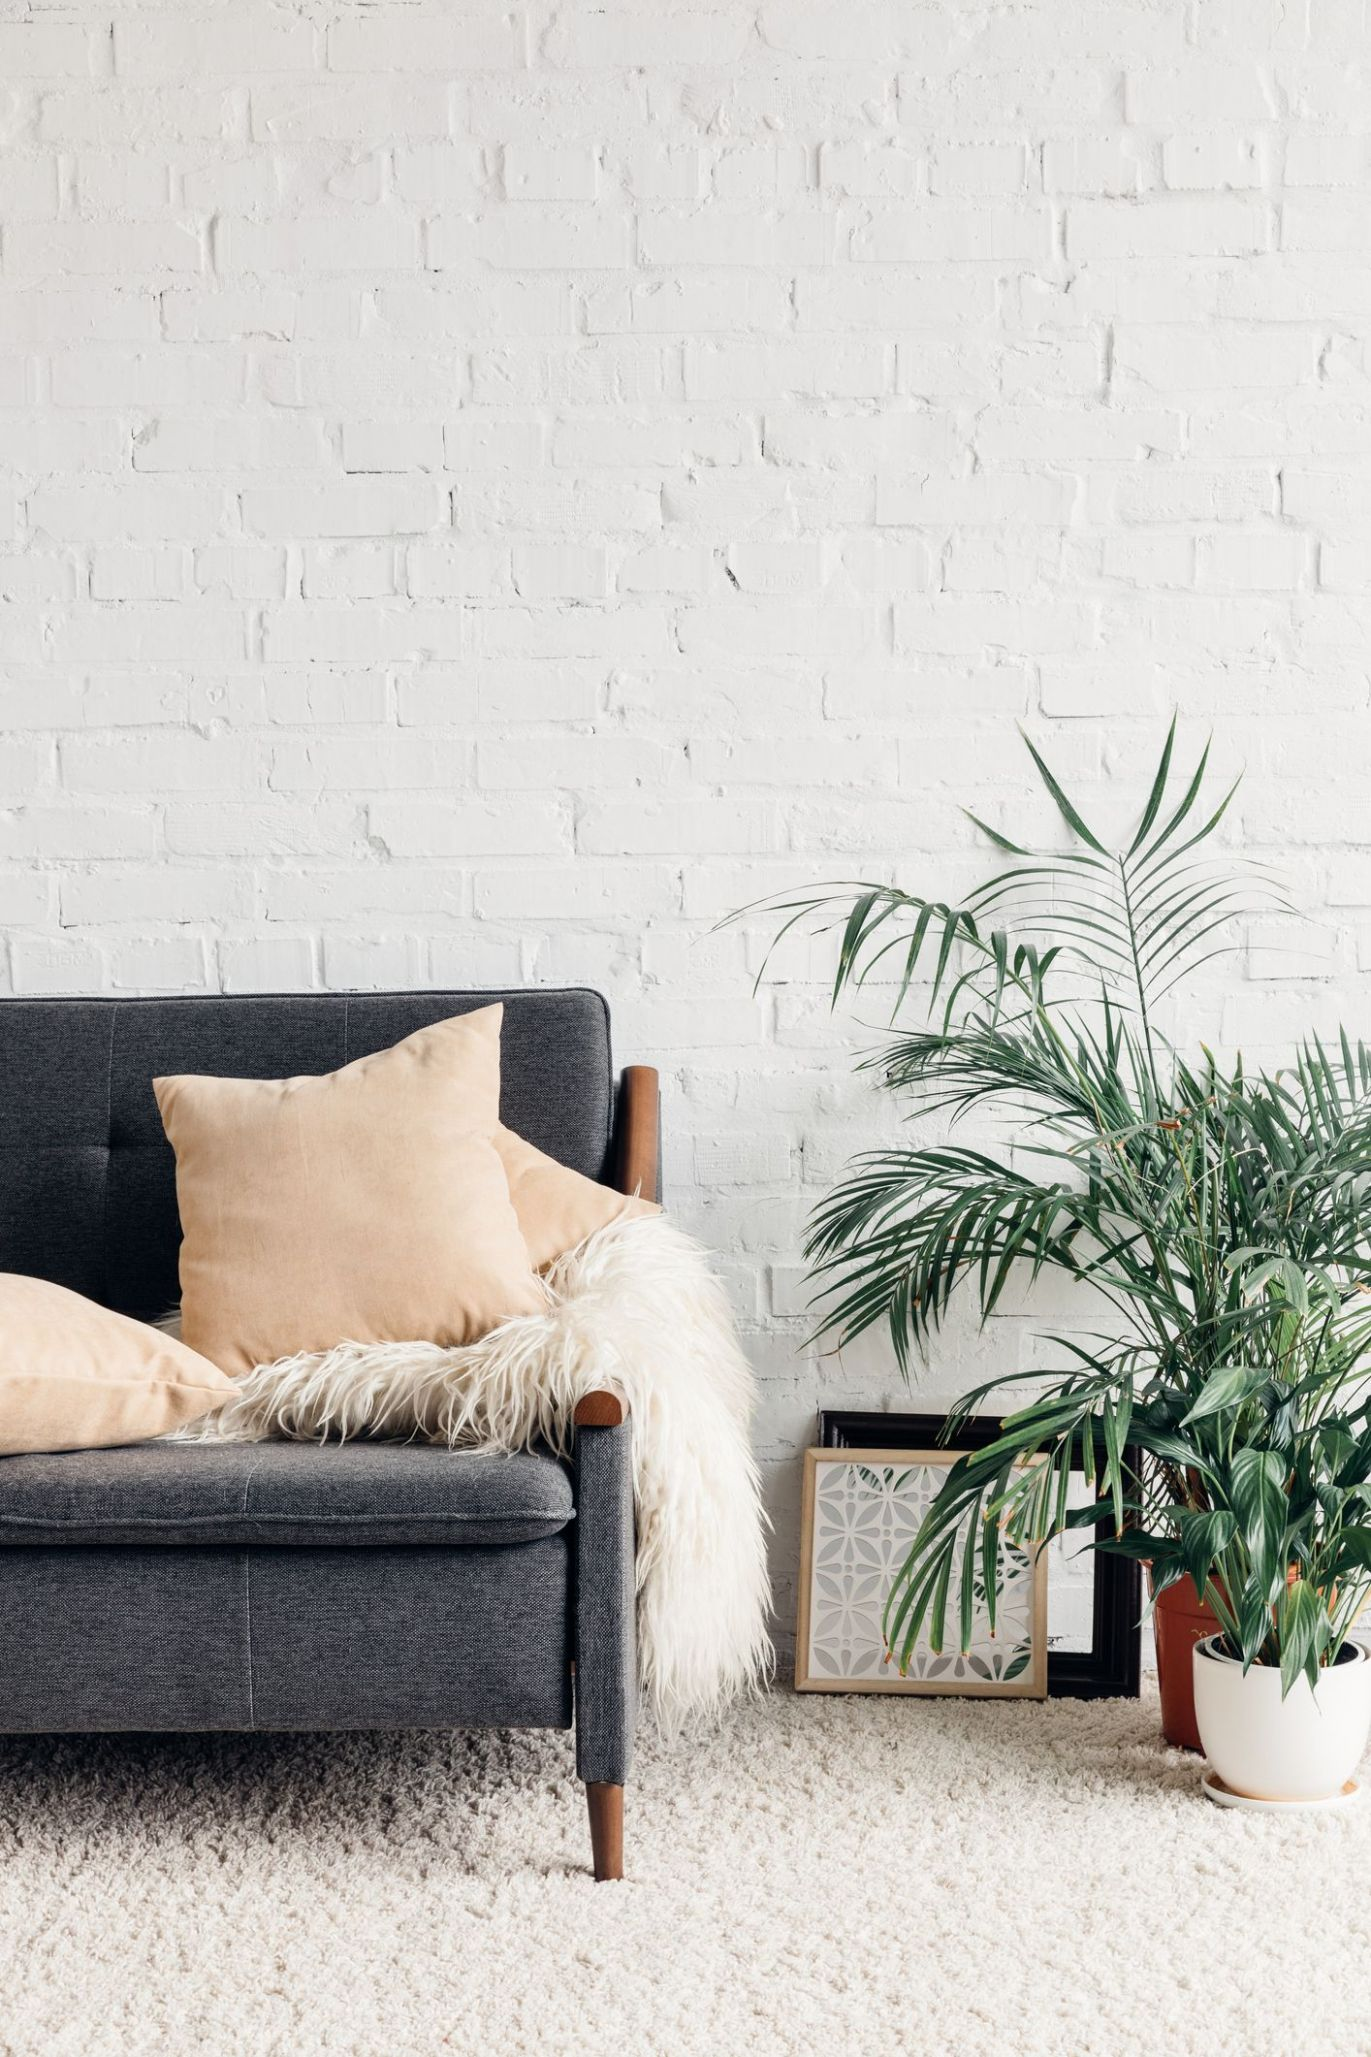 11 Best Living Room Plants - Living Room Indoor Plants to Buy Now - living room ideas with plants